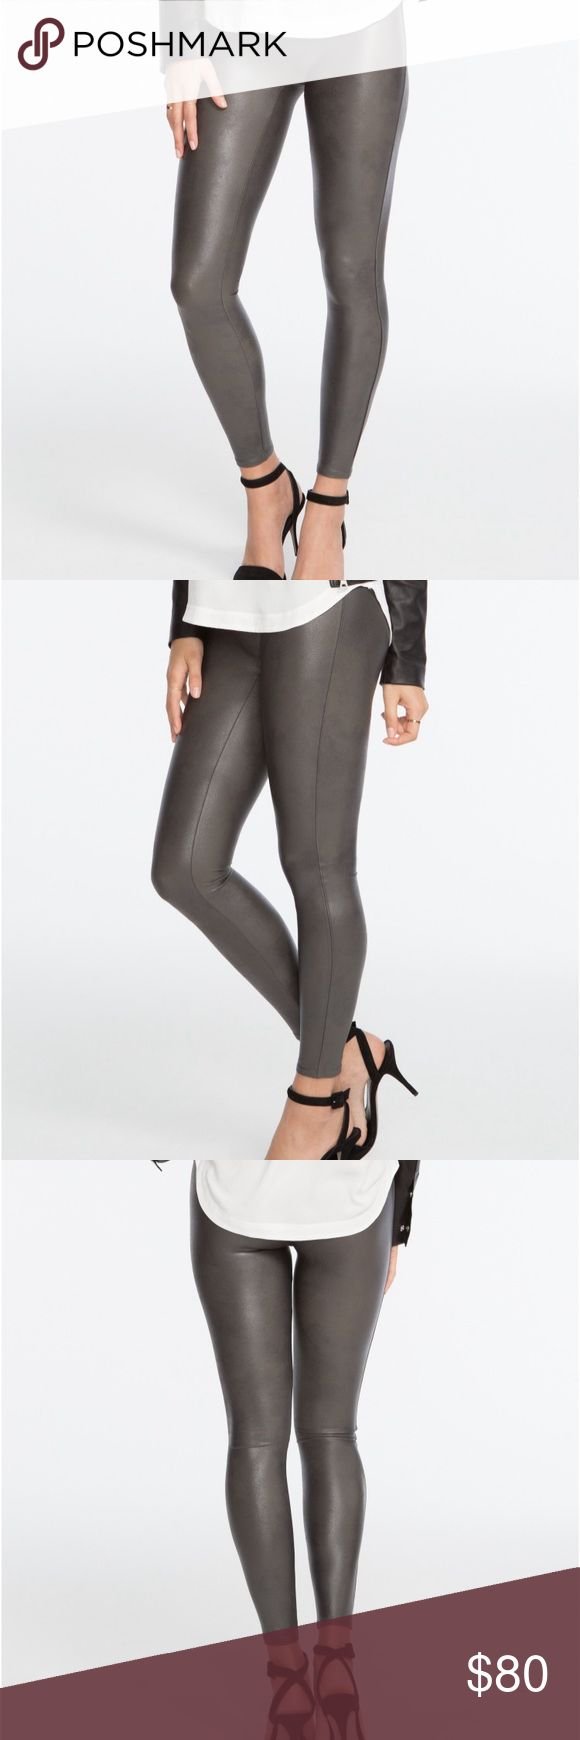 Spanx Faux Leather Leggings NWT Never worn! NWT leather look spanx leggings. Size medium (size 6-8) mid rise, true to size, medium control and shape for tummy, hips, thighs and rear. 27 inch inseam, 8 inch leg opening, 9 inch front rise and 12 inch back rise. SPANX Pants Leggings